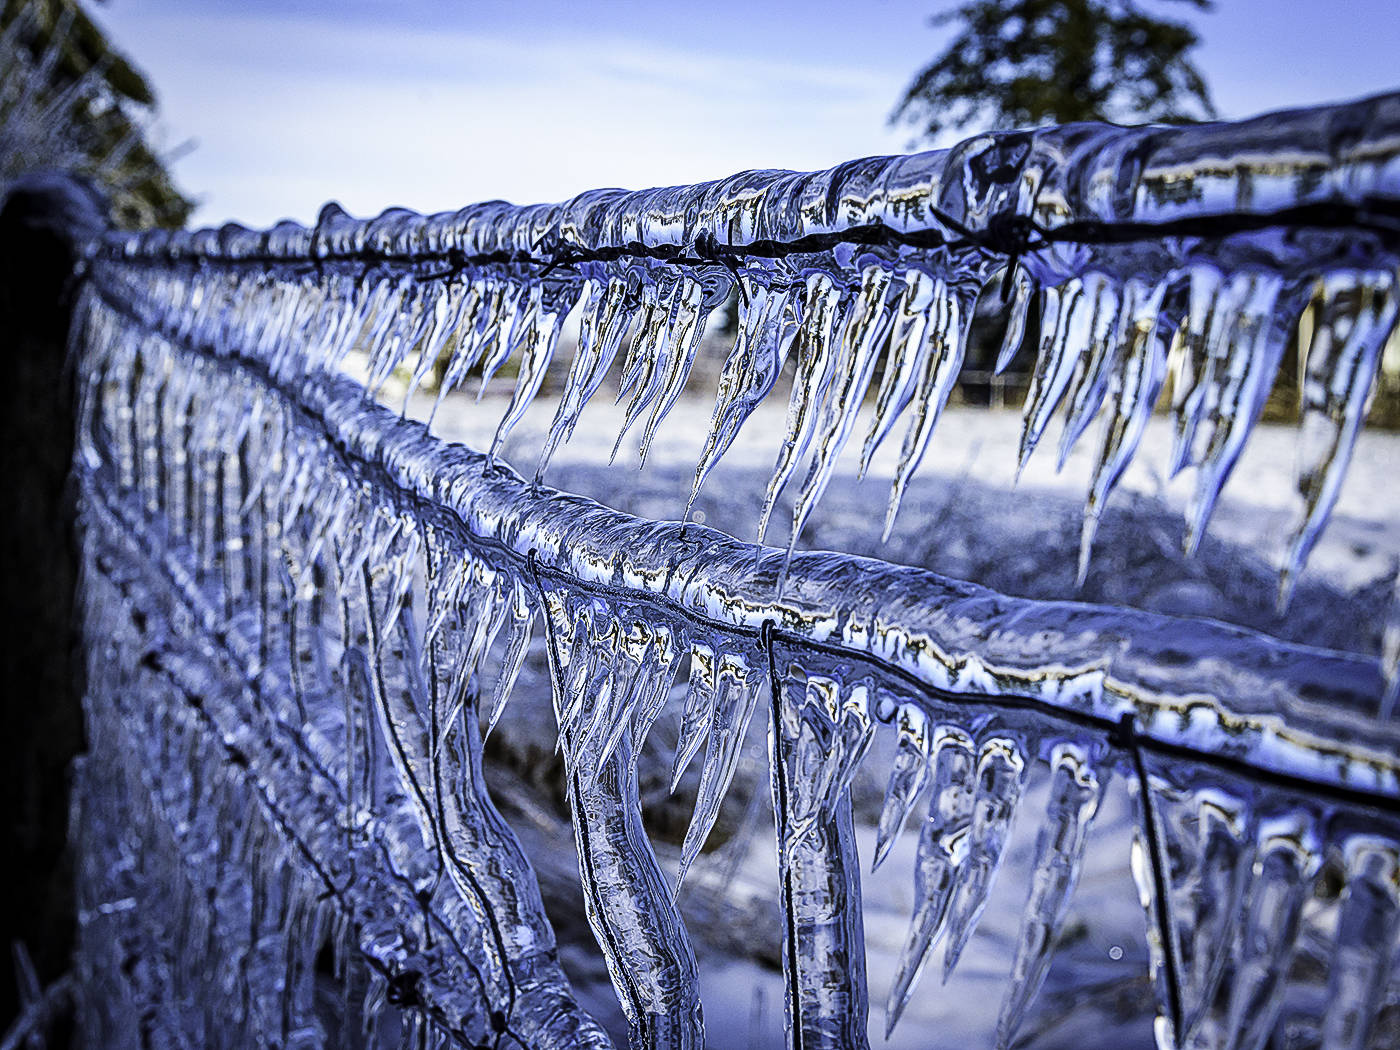 BITING COLD: Langley Camera Club member Tom Truss titled this photo 'Mother Nature baring her icy teeth.' The dramatic image was shot at Aldergrove Regional Park, across the street from the entrance to the bowl, following the recent ice storm. Send your photos of Langley to newsroom@langleytimes.com.                                Tom Truss submitted photo